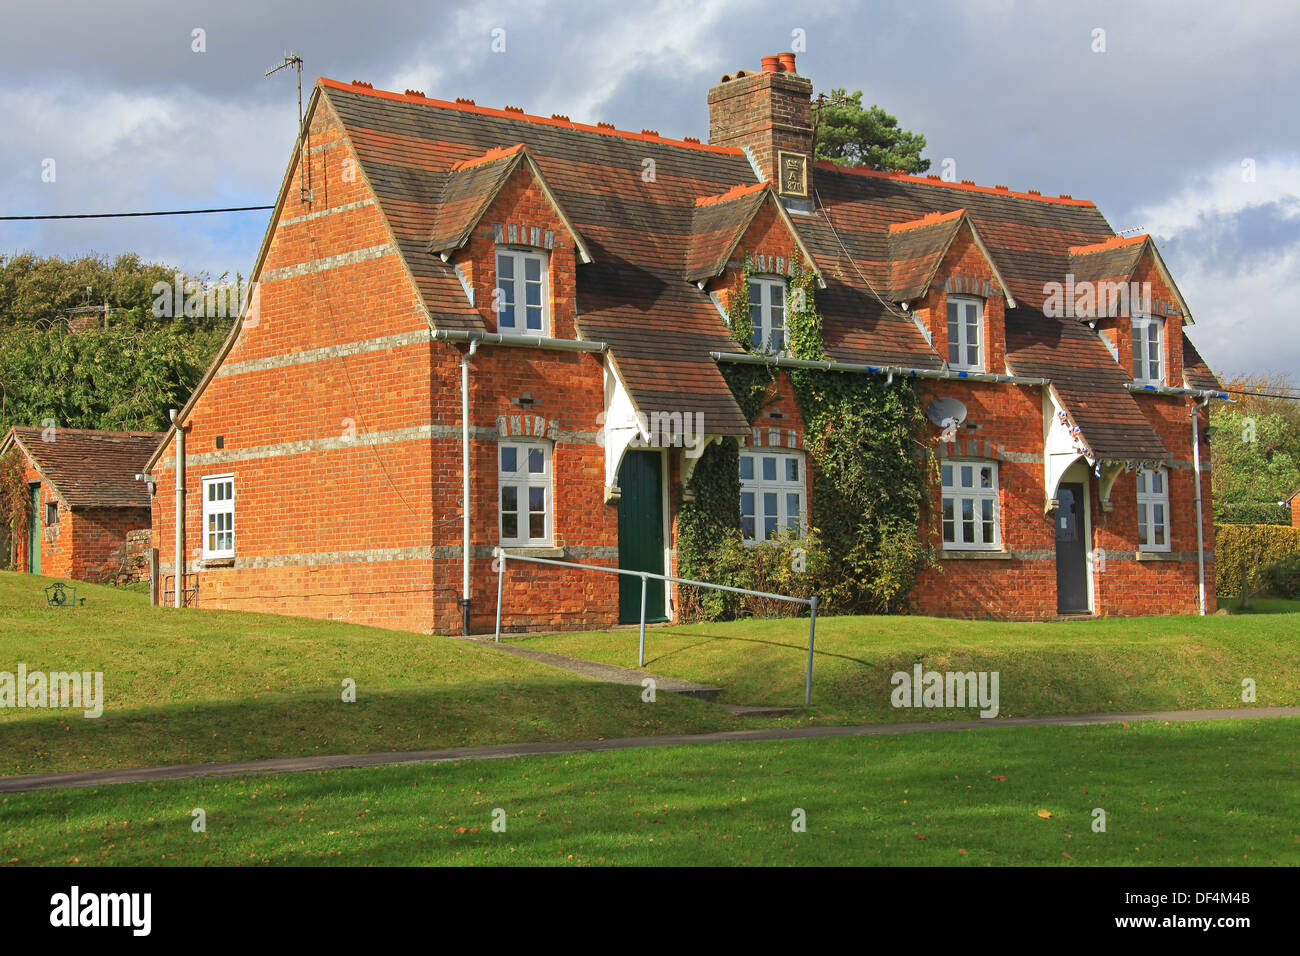 A pair of very neat 'Alms' houses built in 1870 in a well maintained rural setting. - Stock Image